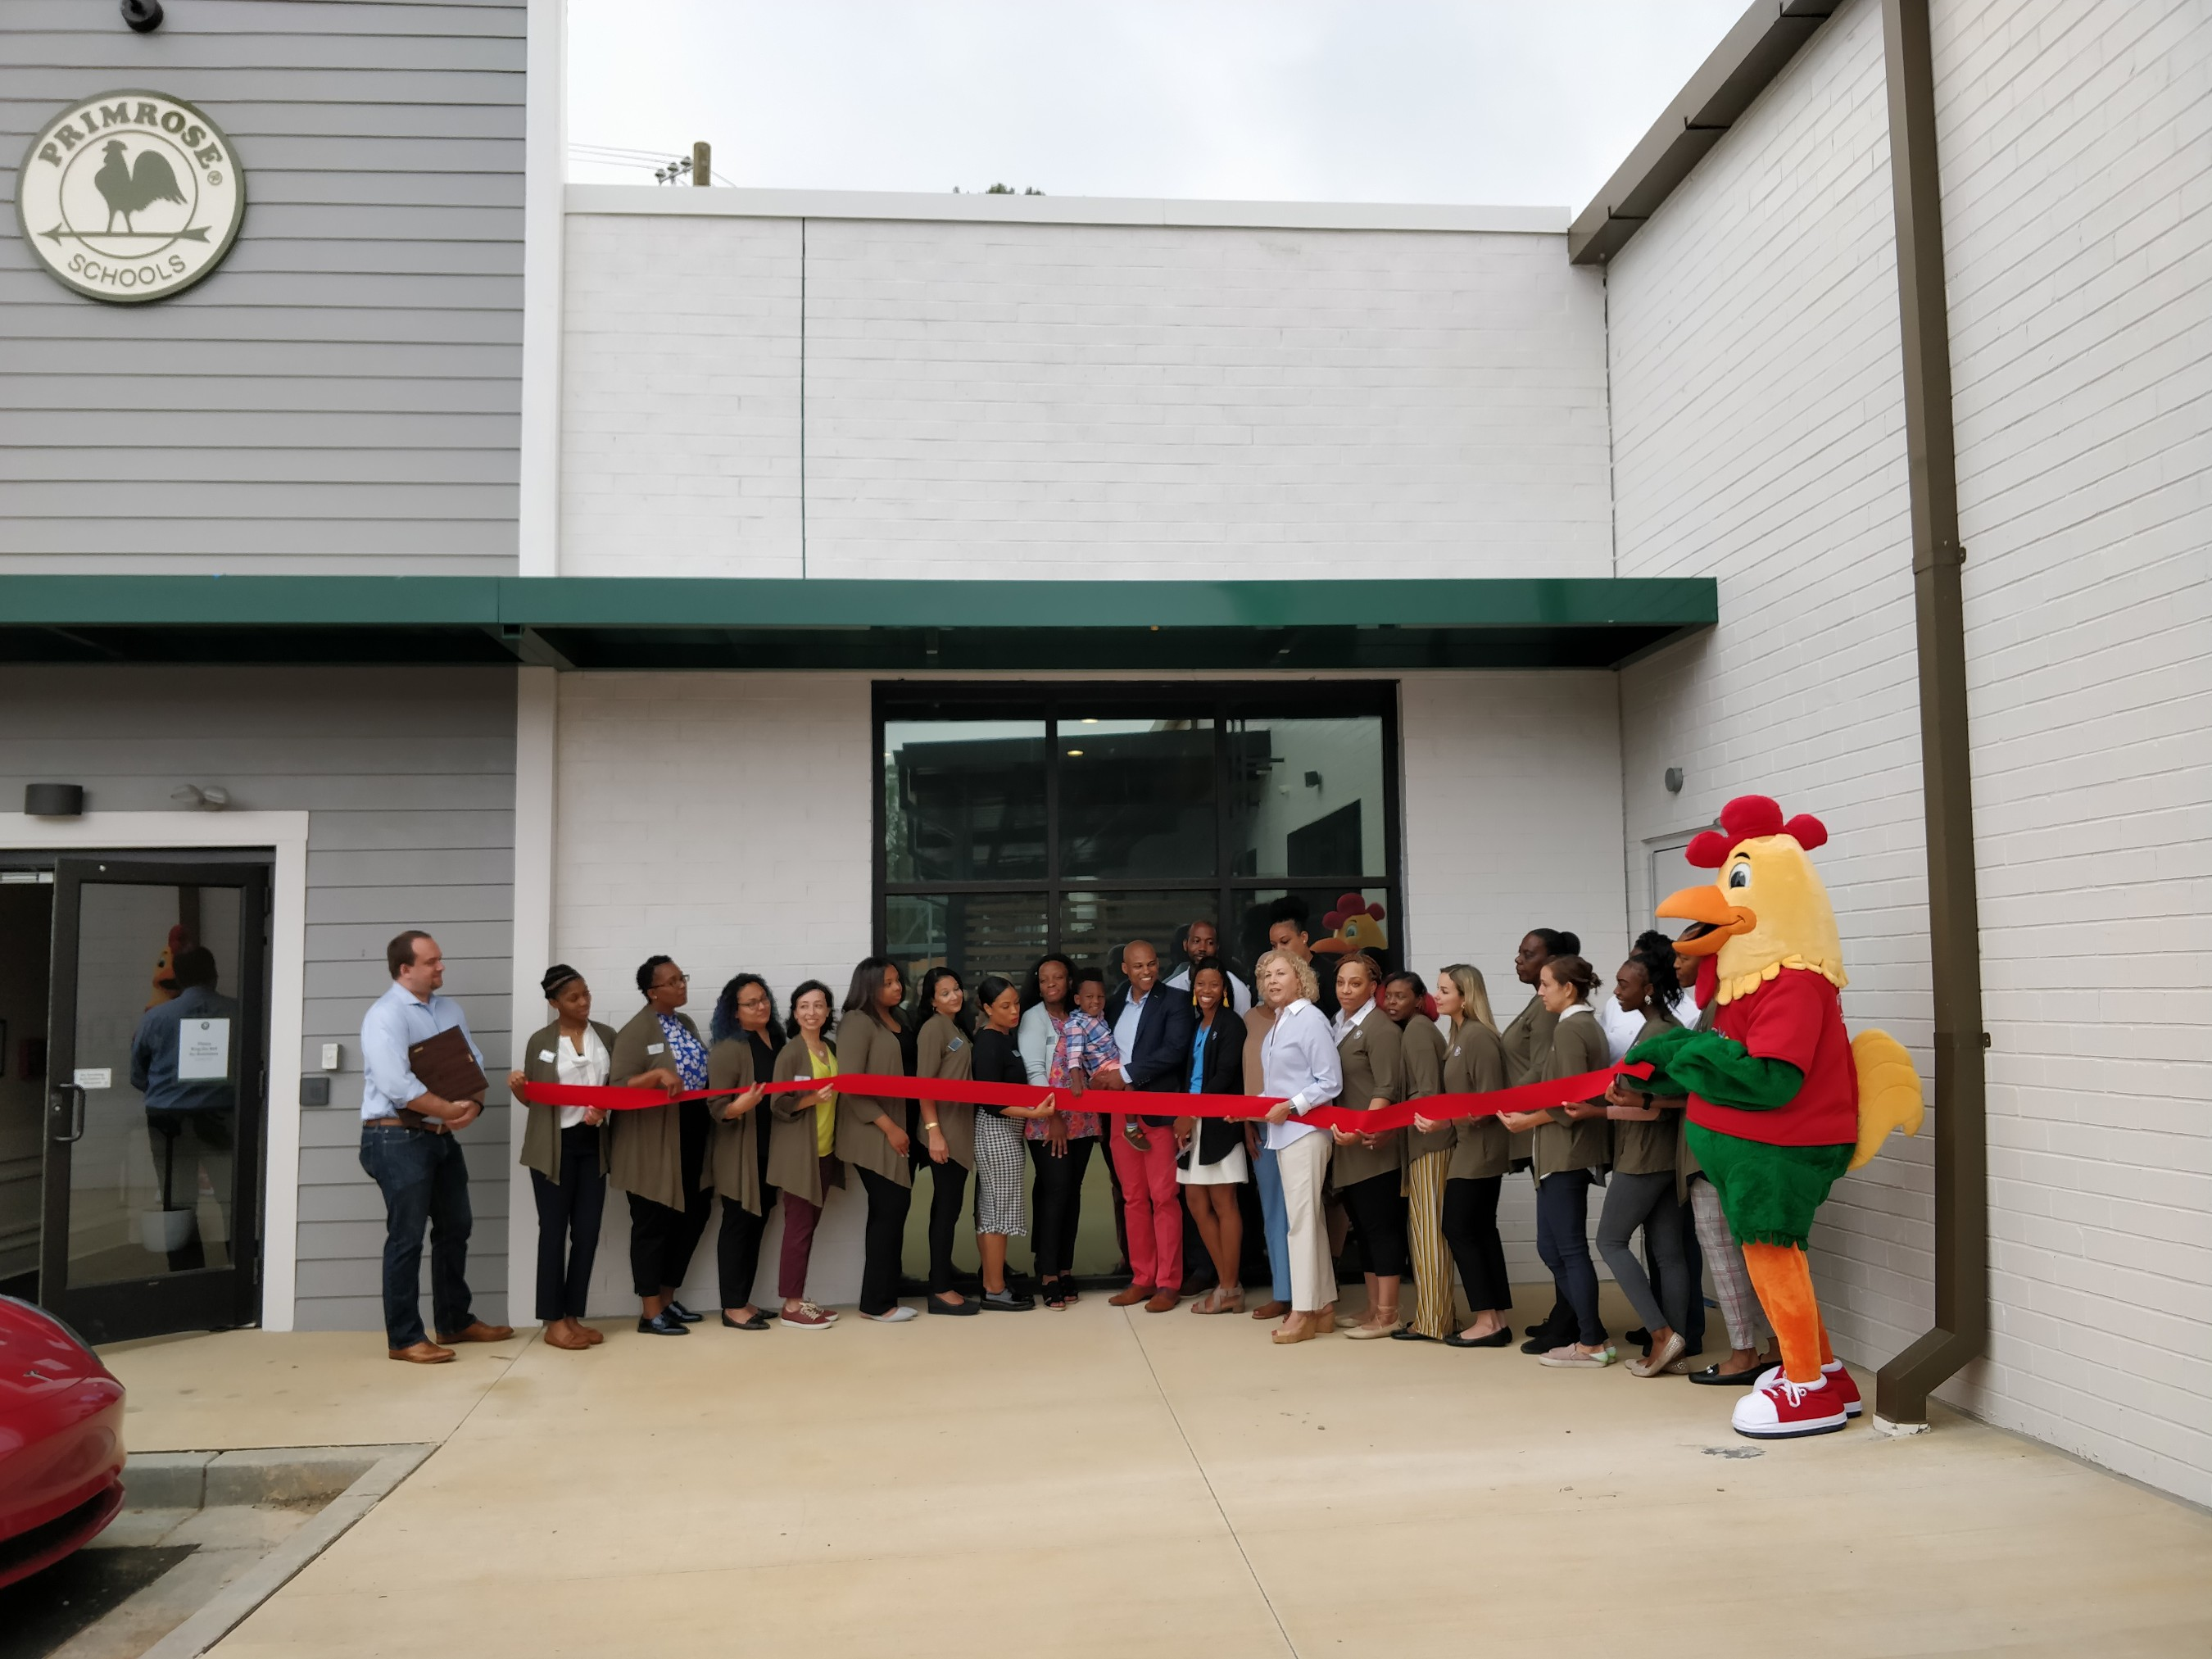 Primrose's 400th school ribbon cutting